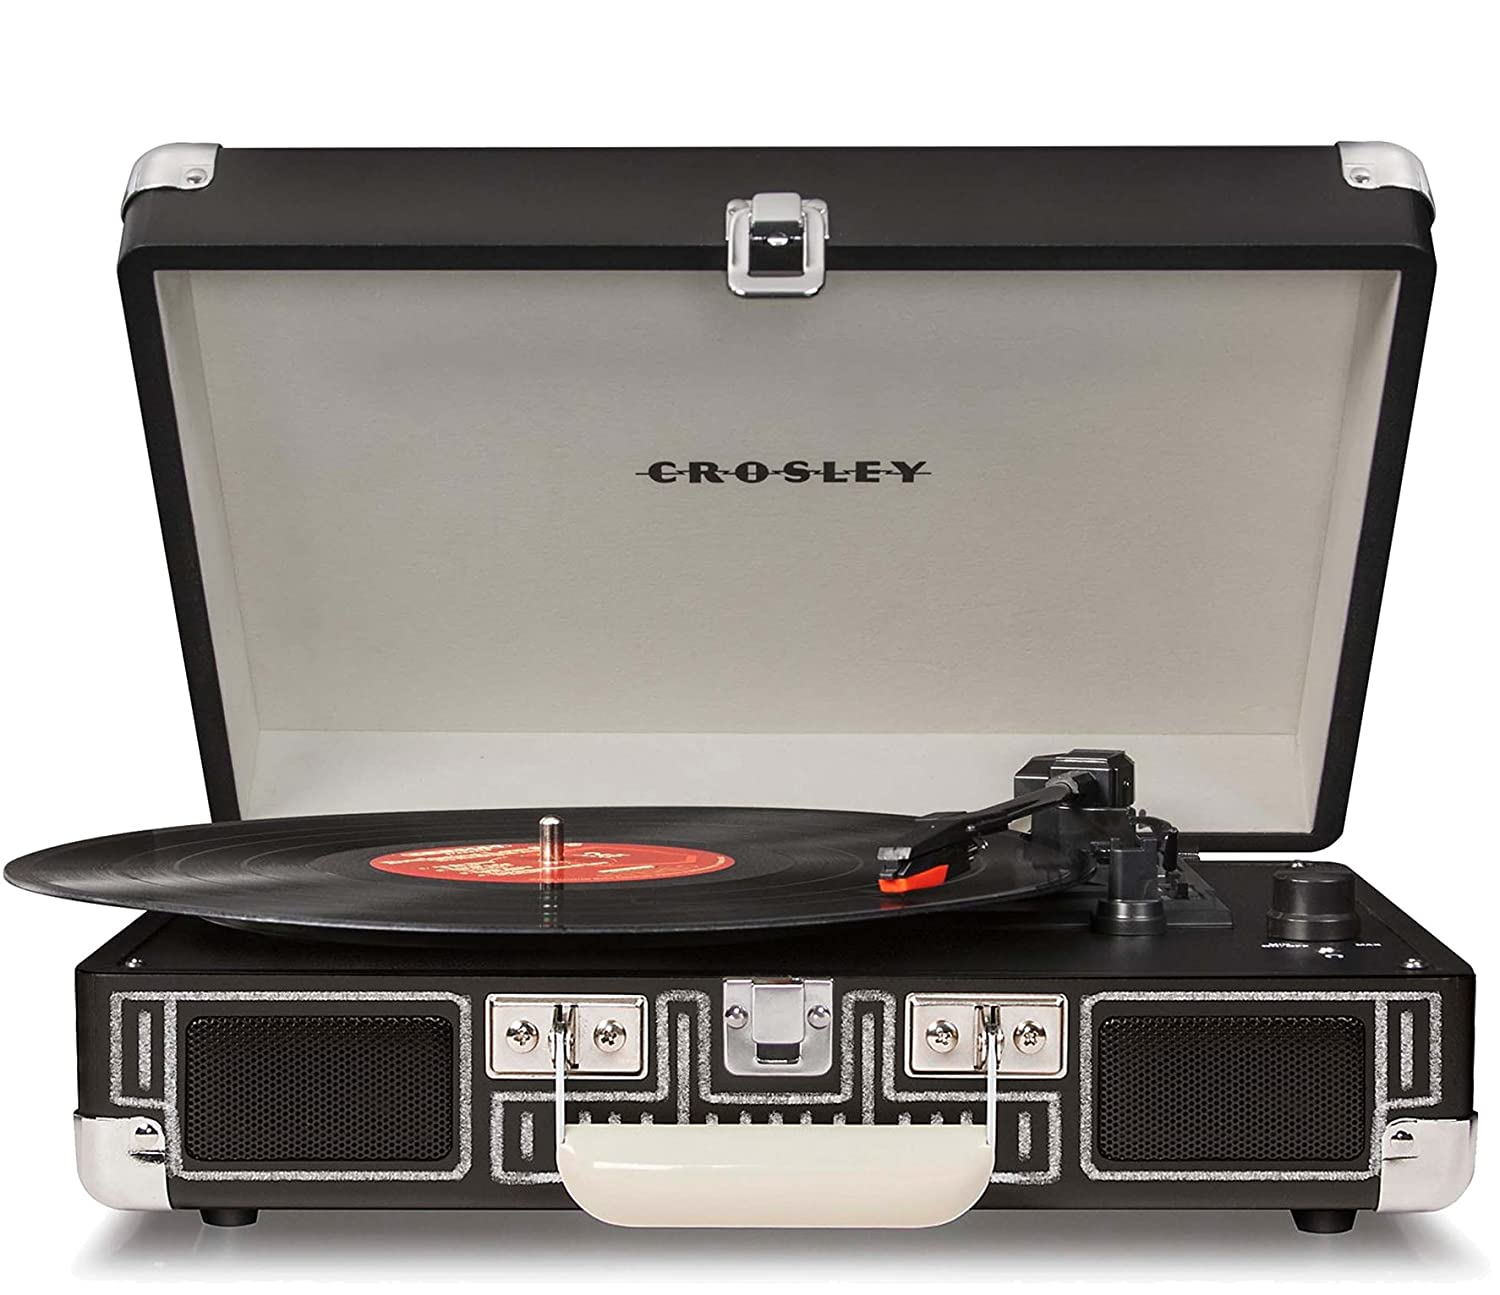 CR8005A-CB Chalkboard Cruiser Turntable System ポータブルターンテーブル Crosley Furniture社【並行輸入】 B00O1LP3LK